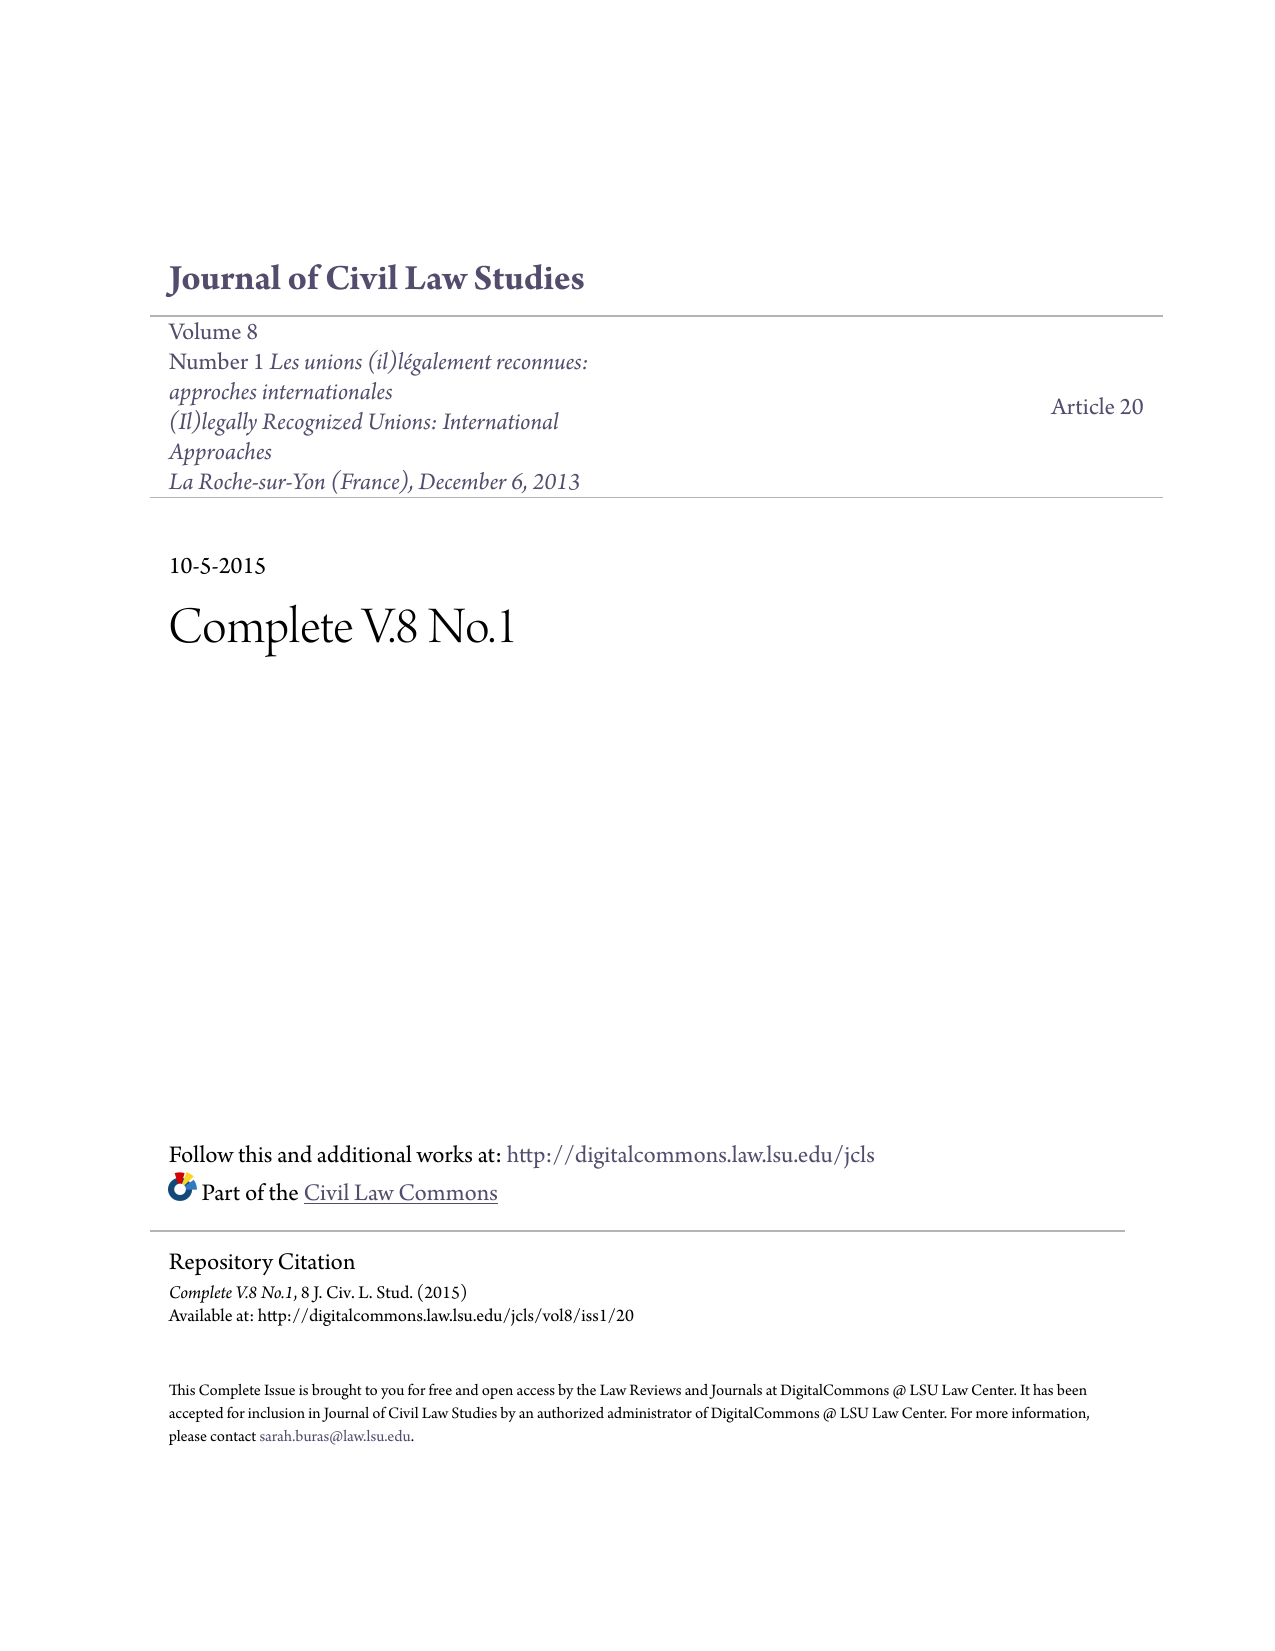 Complete V 8 No 1 - DigitalCommons @ LSU Law Center